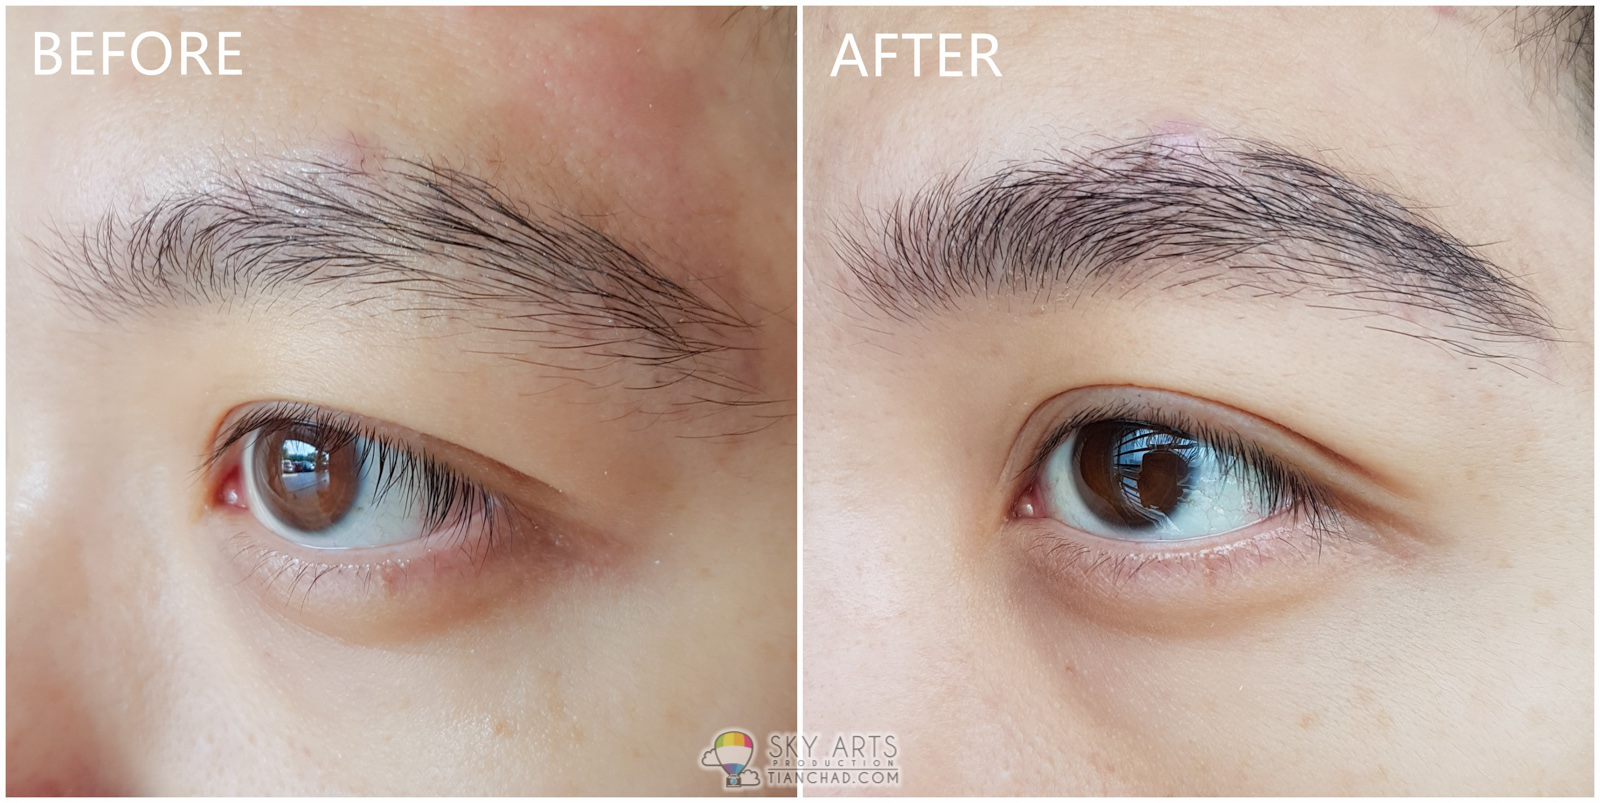 Giveaway Ive Got New Eyebrow Natural Eyebrow Embroidery For Men